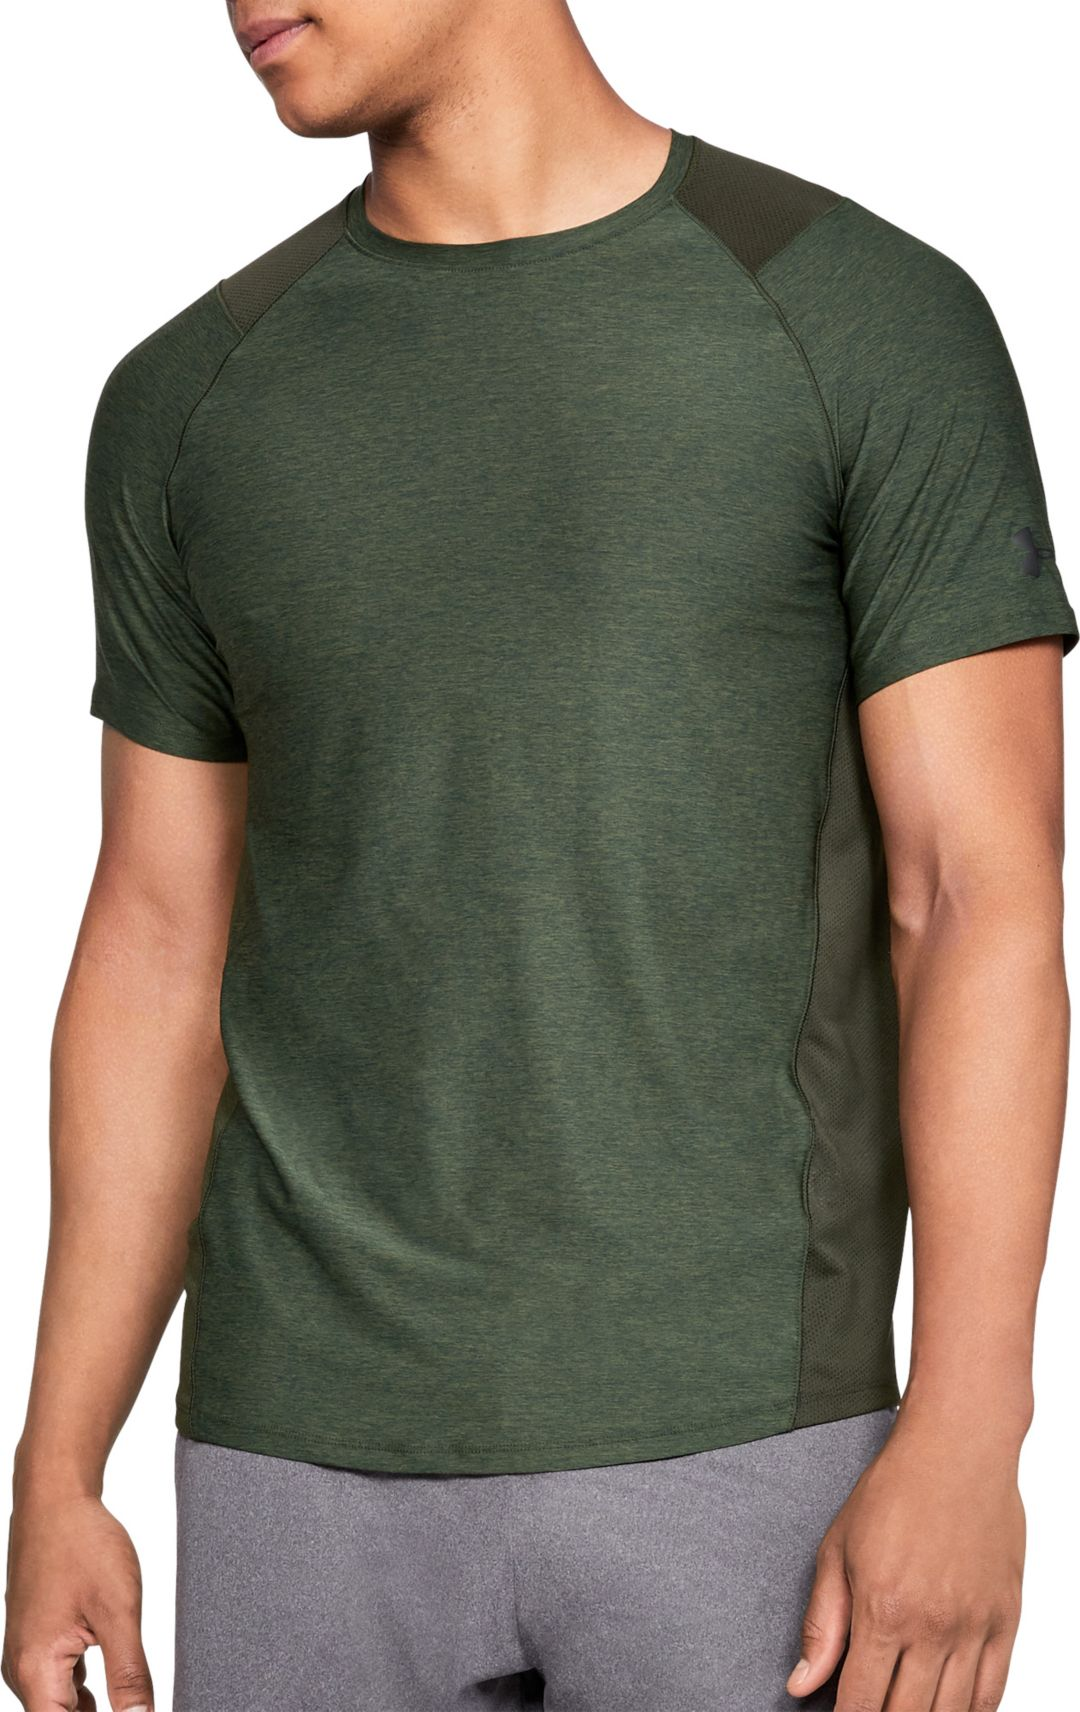 5557cd04 Under Armour Men's MK-1 T-Shirt | DICK'S Sporting Goods